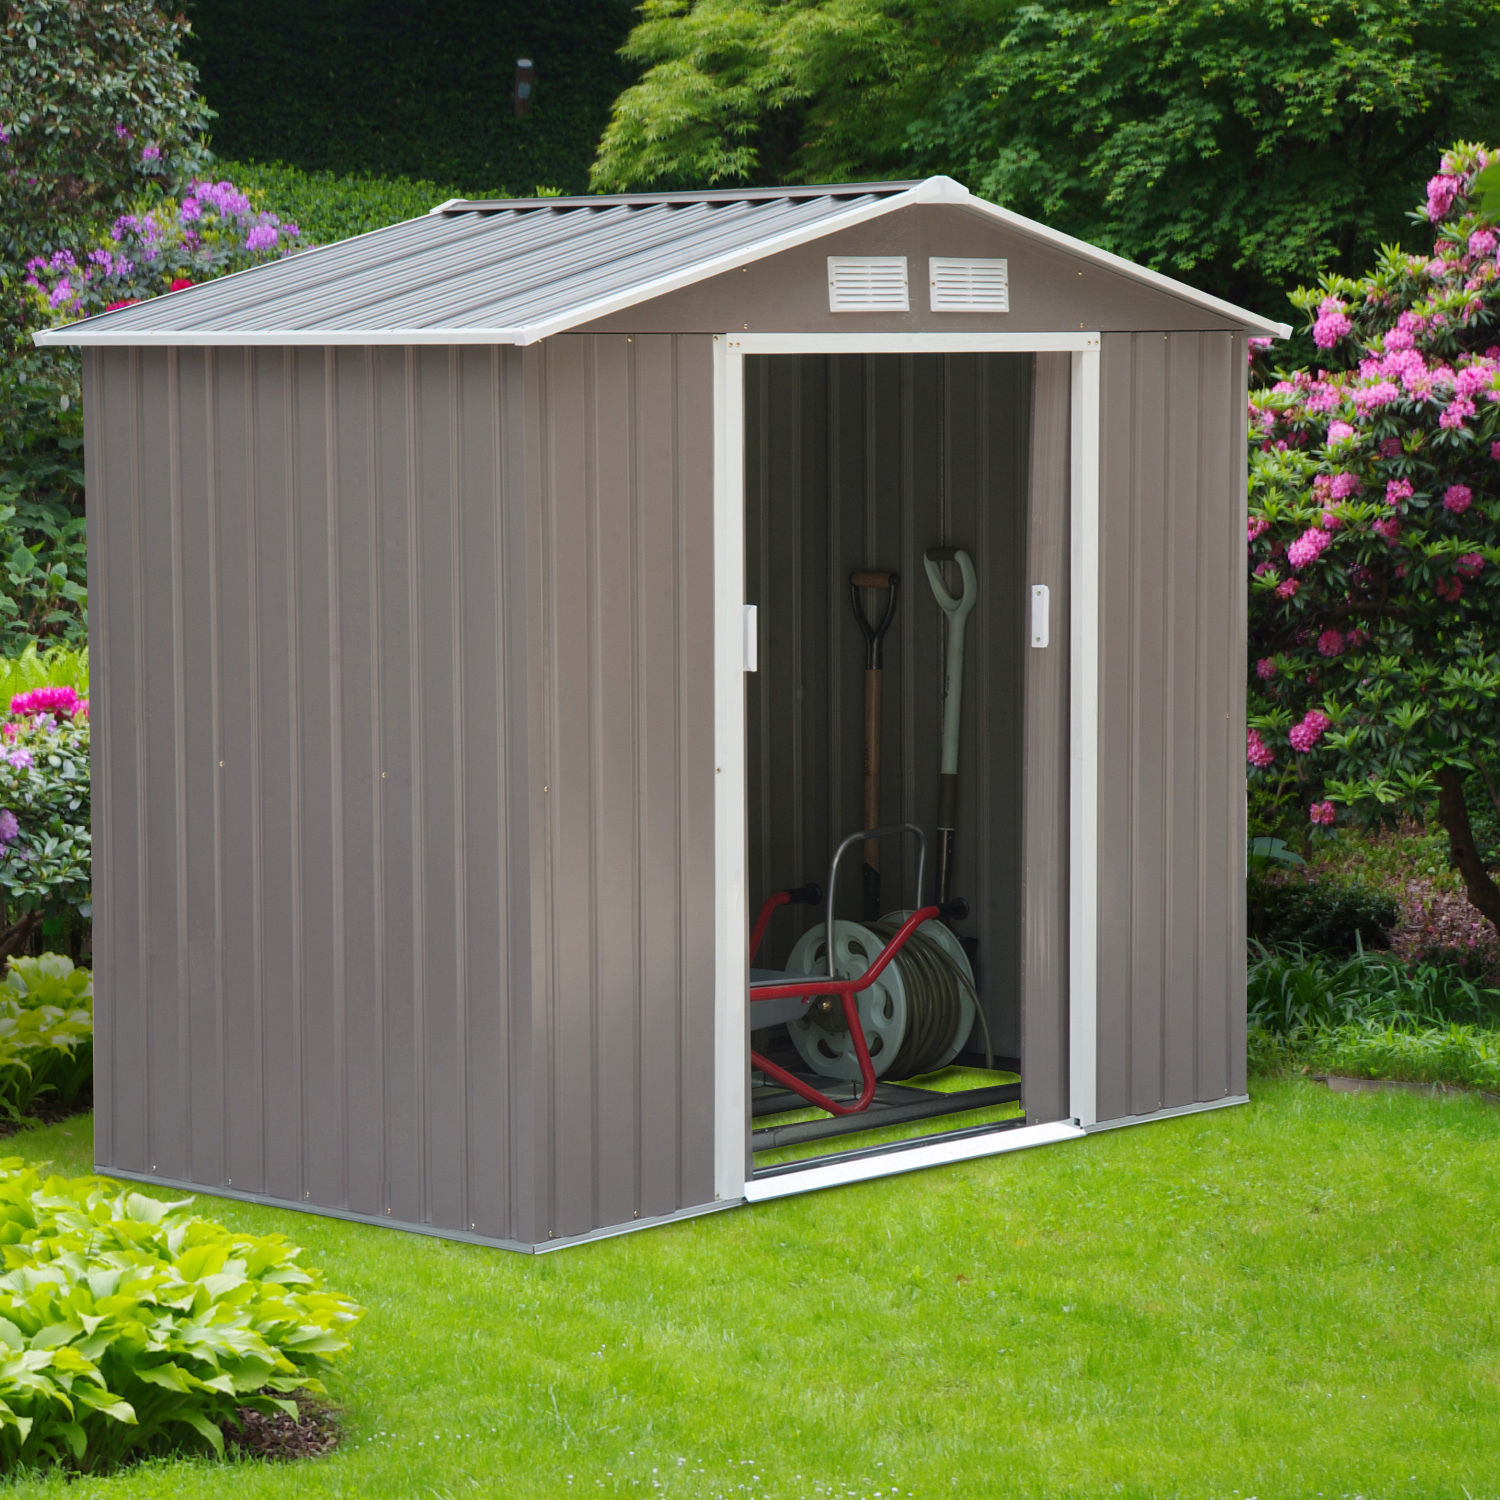 Details about 7'x4' Steel Outdoor Garden Storage Shed All Weather Tool on outdoor pool designs, wood playhouse designs, cool playhouse designs, outdoor studio designs, outdoor garage designs, outdoor cottage designs, indoor playhouse designs, outdoor shopping designs, playhouse plans and designs, playhouse printable designs, outdoor arena designs, outdoor furniture designs, outdoor playset designs, outdoor playground designs, outdoor garden designs, outdoor house designs, outdoor patio designs, outdoor fireplaces designs, outdoor office designs, outdoor shed designs,